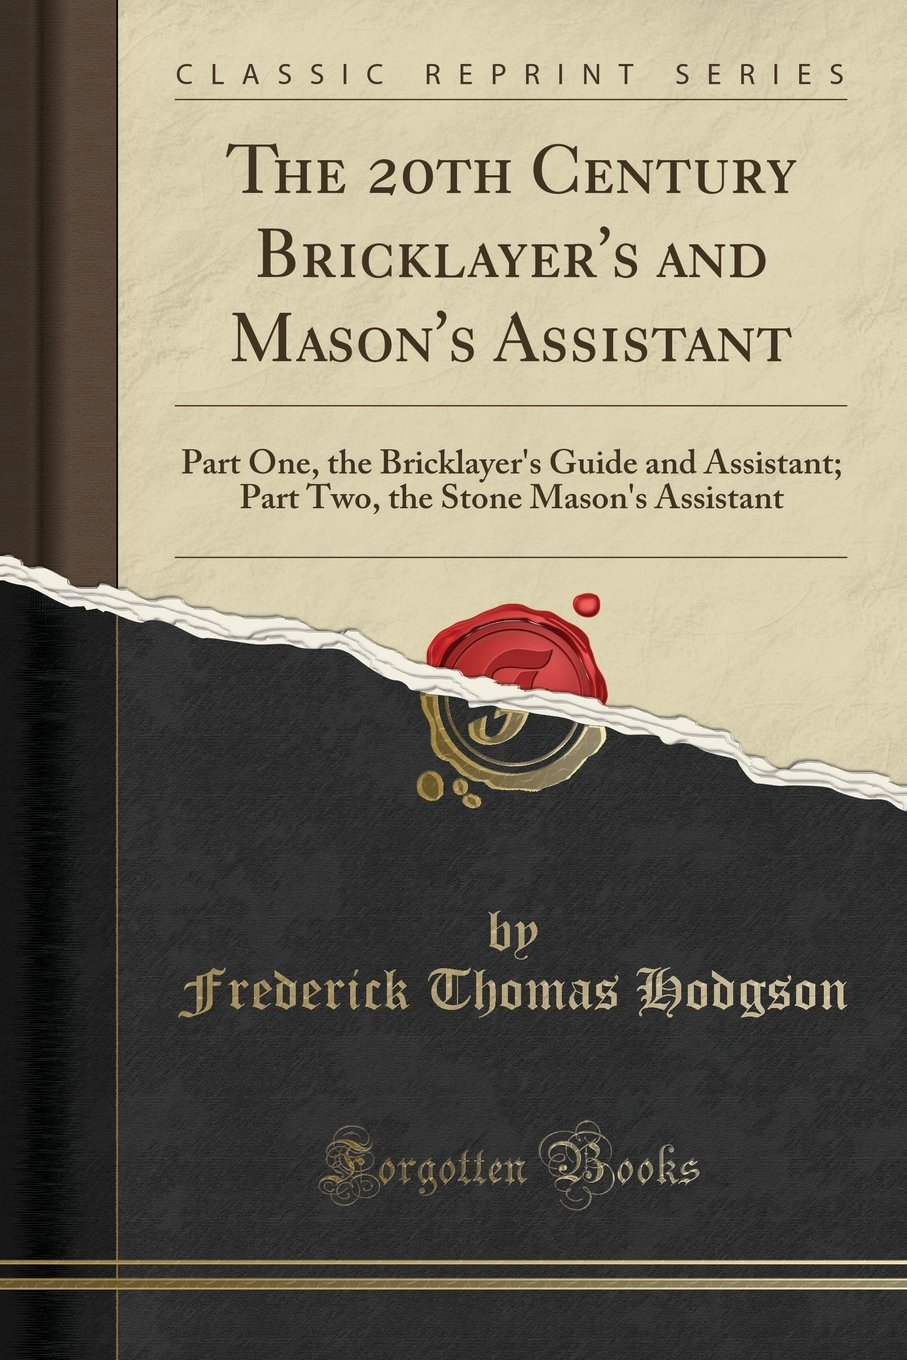 Download The 20th Century Bricklayer's and Mason's Assistant: Part One, the Bricklayer's Guide and Assistant; Part Two, the Stone Mason's Assistant (Classic Reprint) PDF